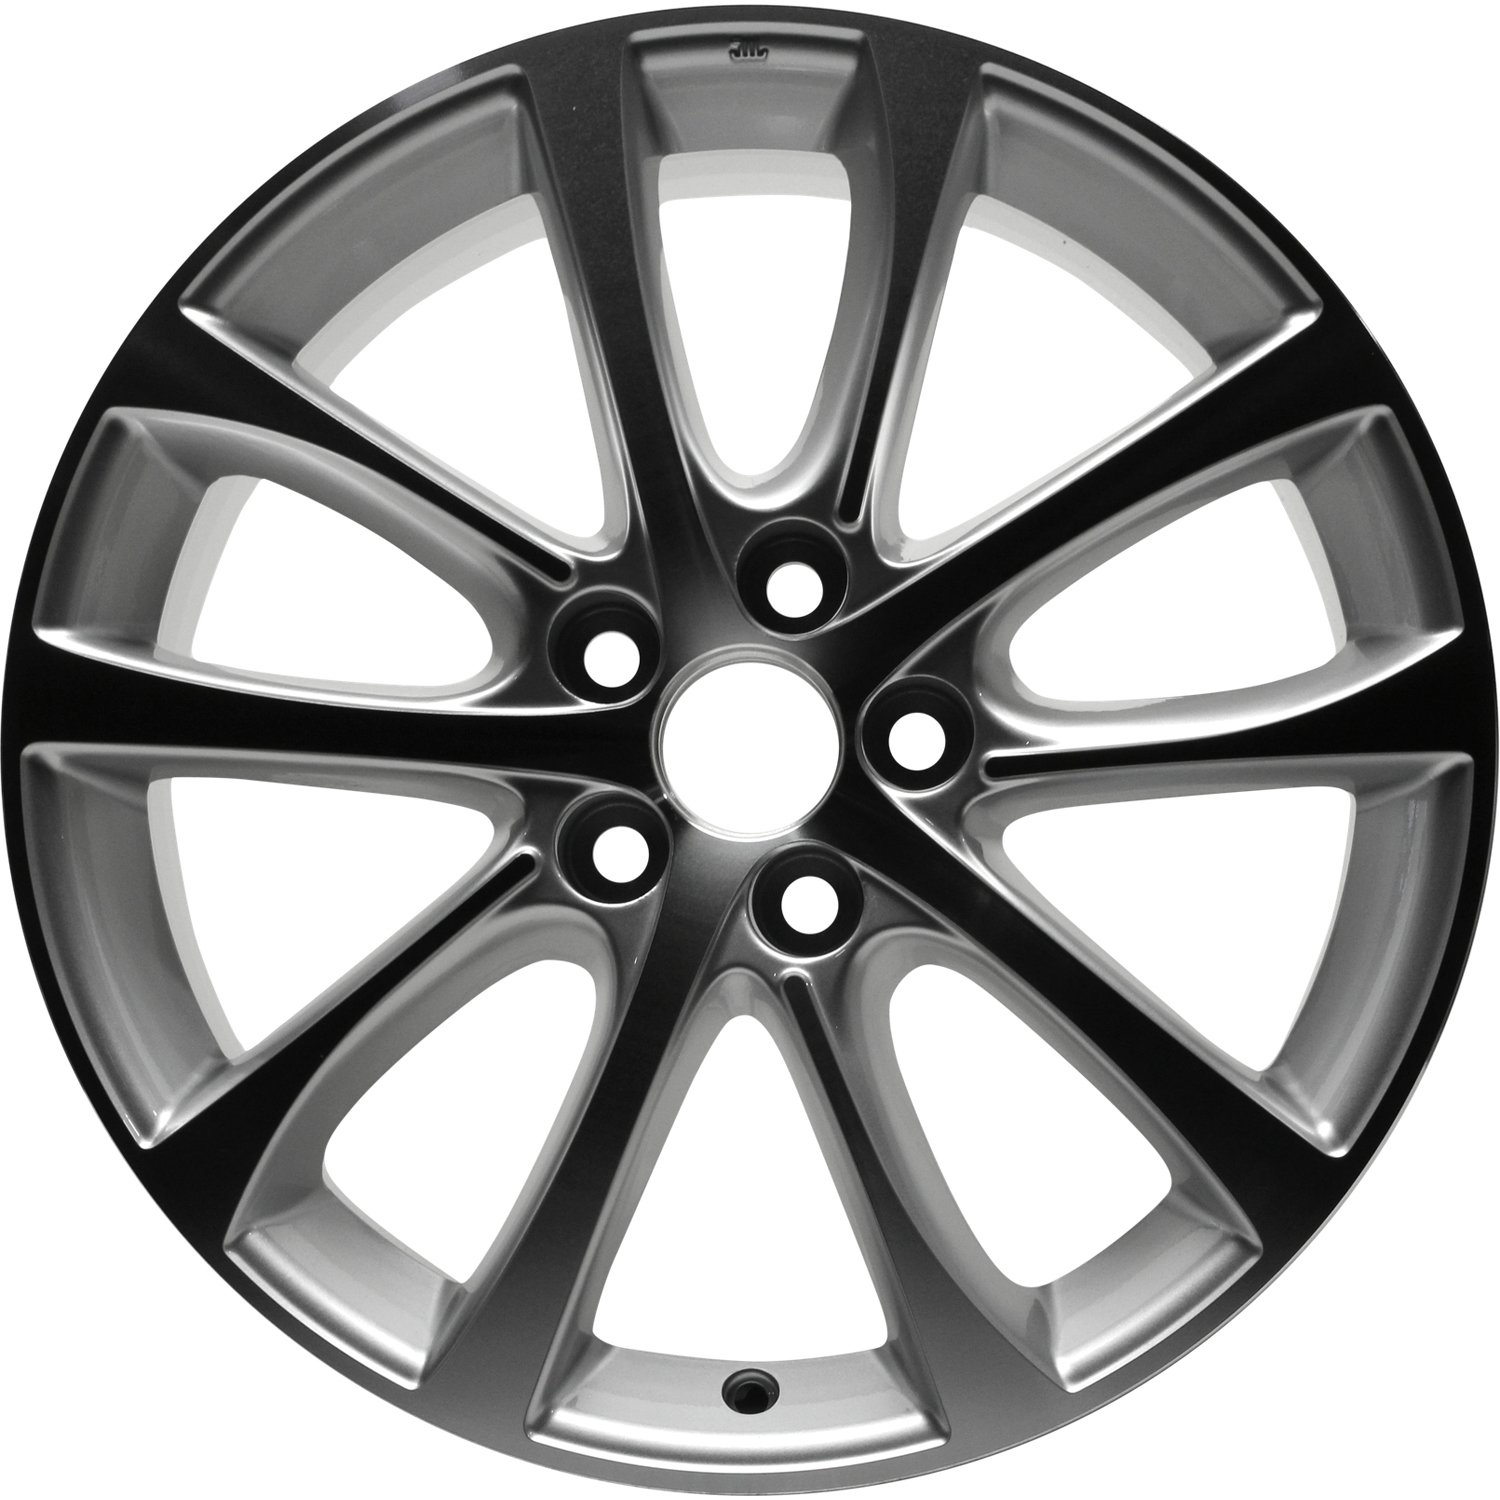 remanufactured 18x7 5 alloy wheel 10 spoke machined w silver inlays Used Chevy Hubcaps remanufactured 18x7 5 alloy wheel 10 spoke machined w silver inlays